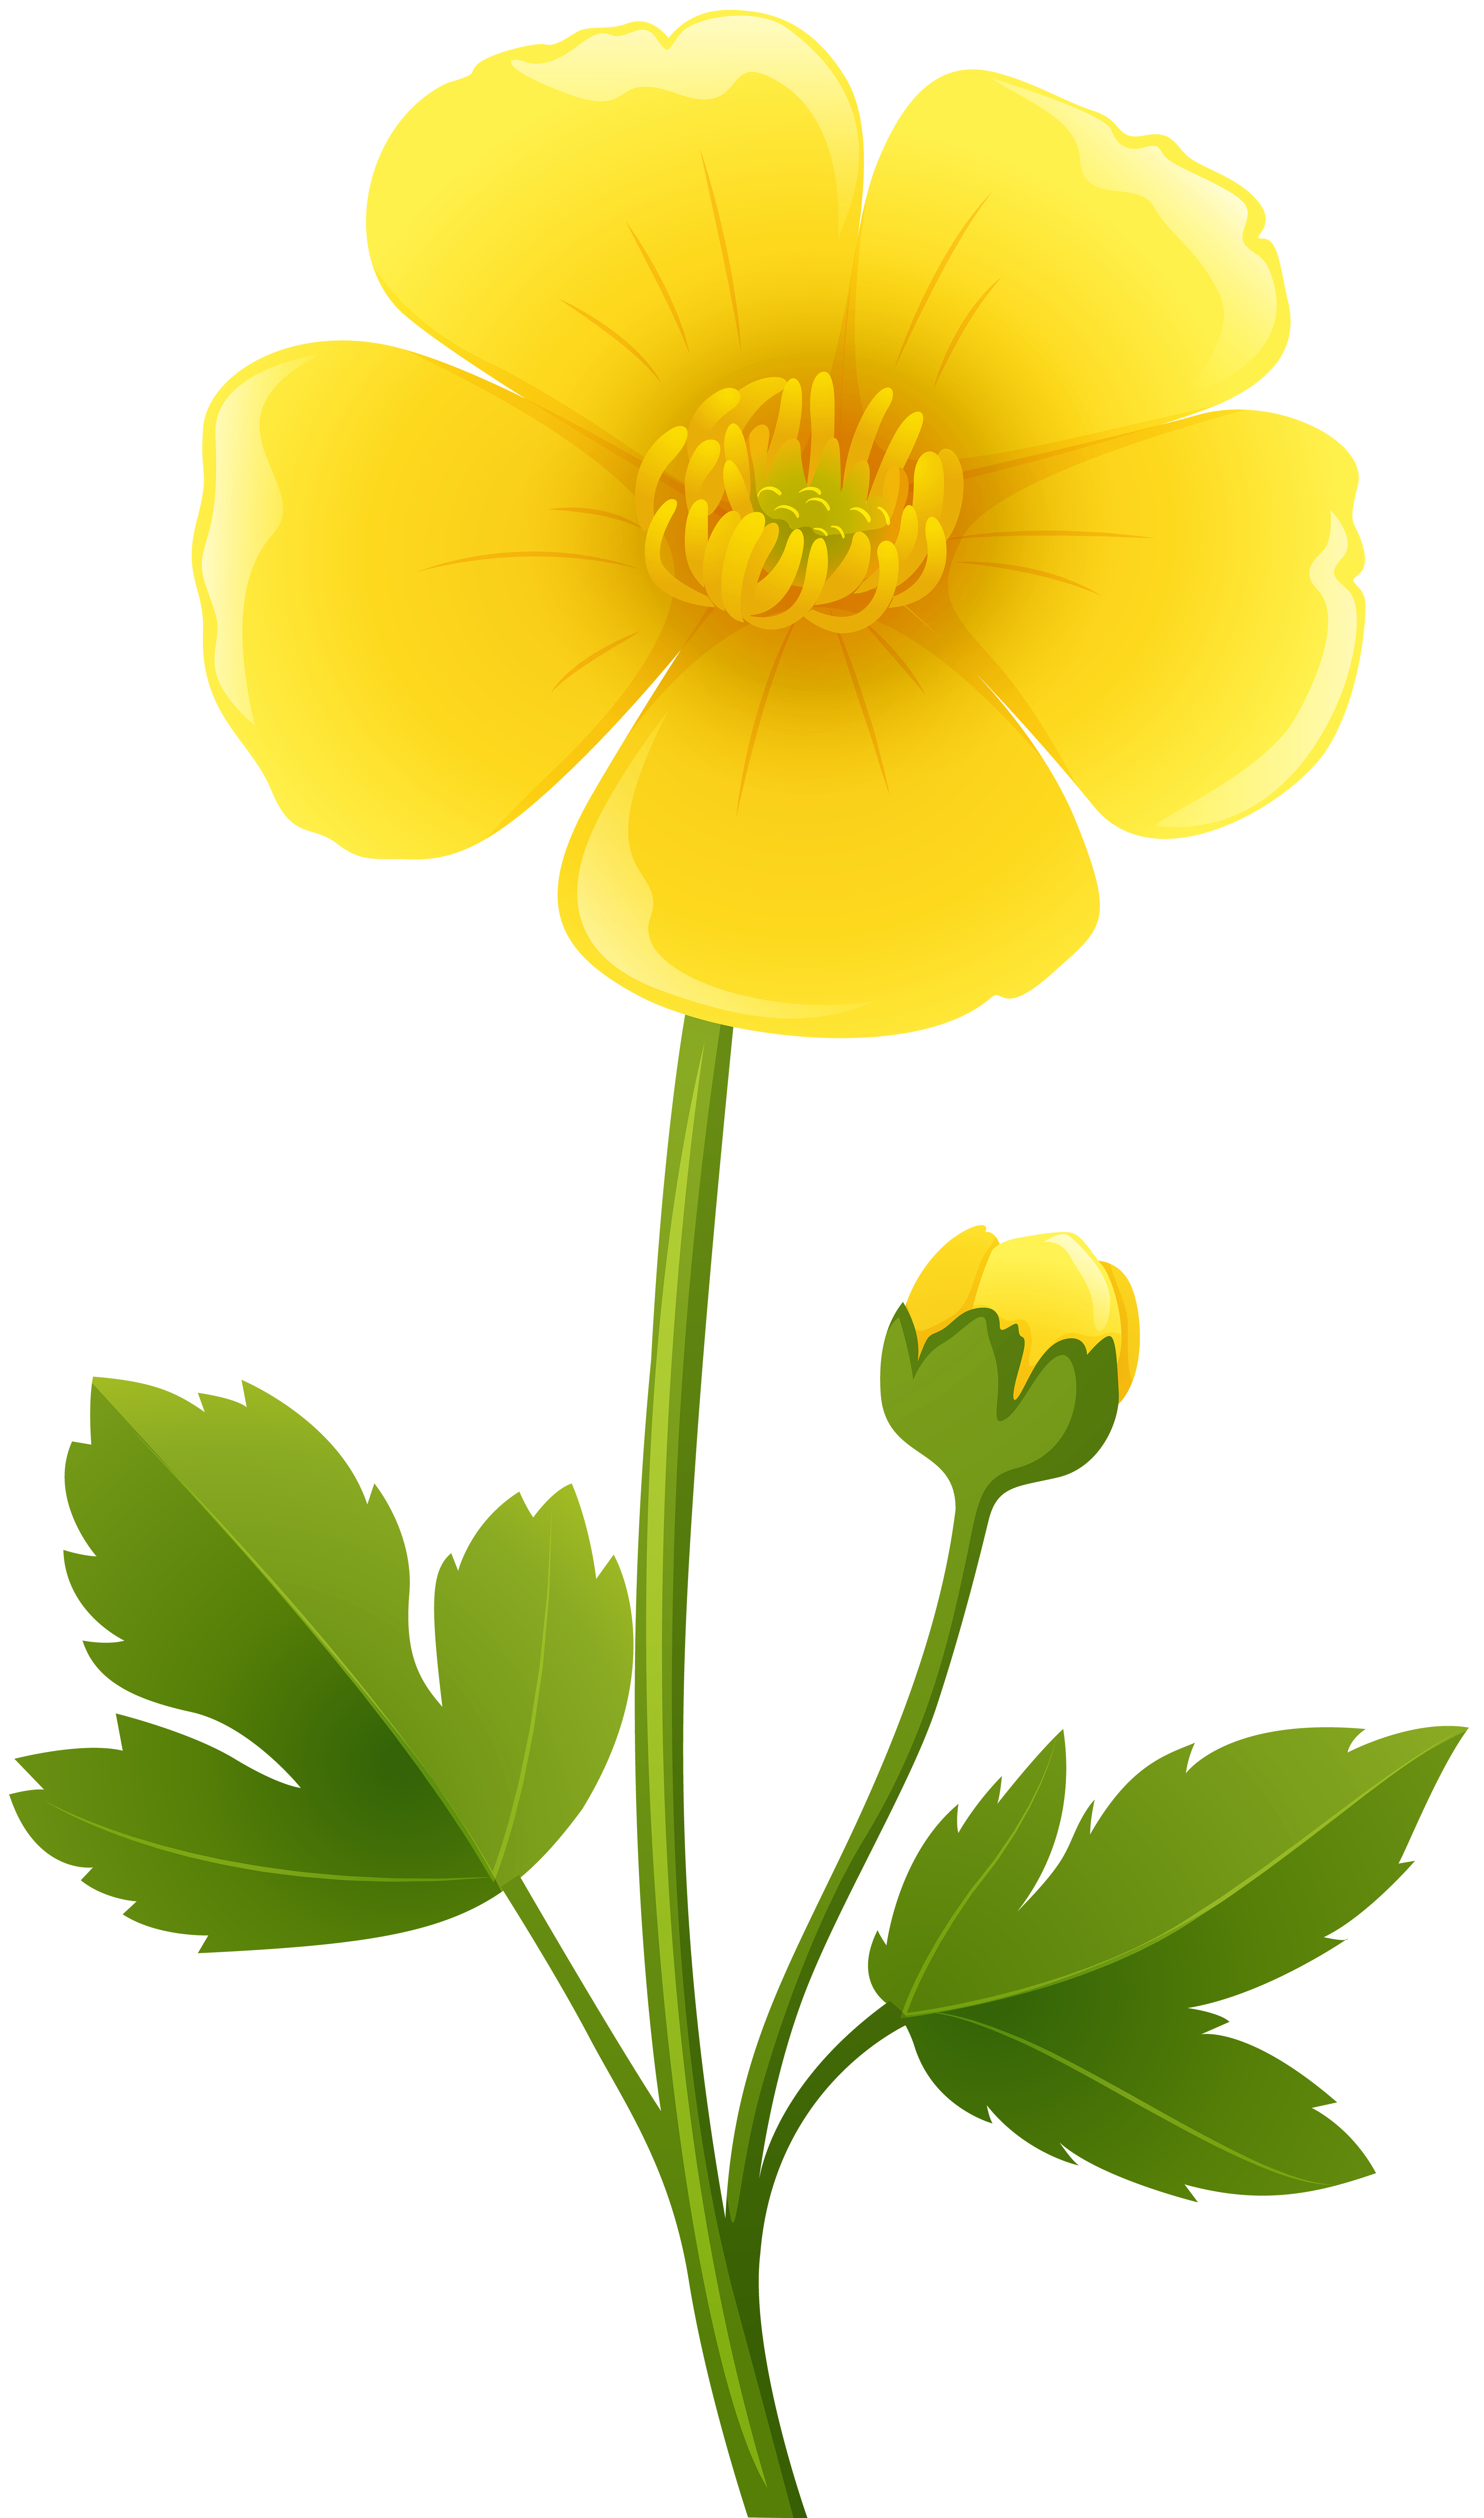 Flower clipart images clip royalty free stock Buttercup Flower Clipart at GetDrawings.com | Free for personal use ... clip royalty free stock